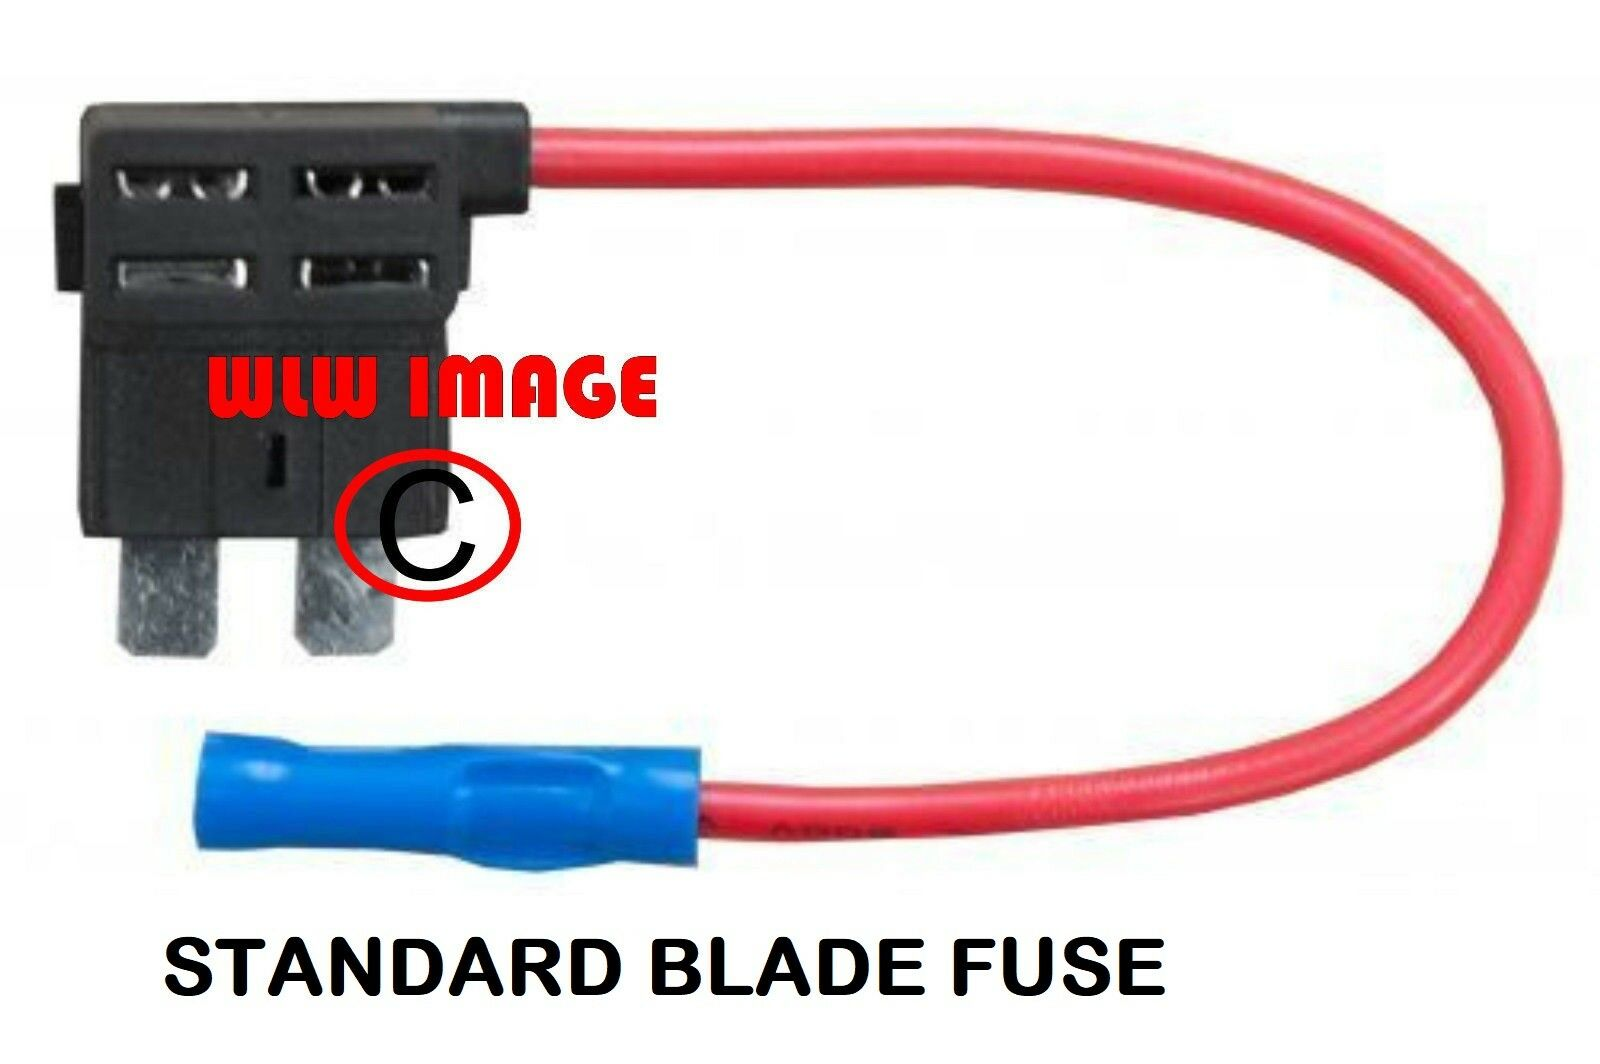 Add A Circuit 20a Standard Blade Fuse Holder Piggyback Tap Wire Buy Mini Cable Fu36 1 Of 1free Shipping